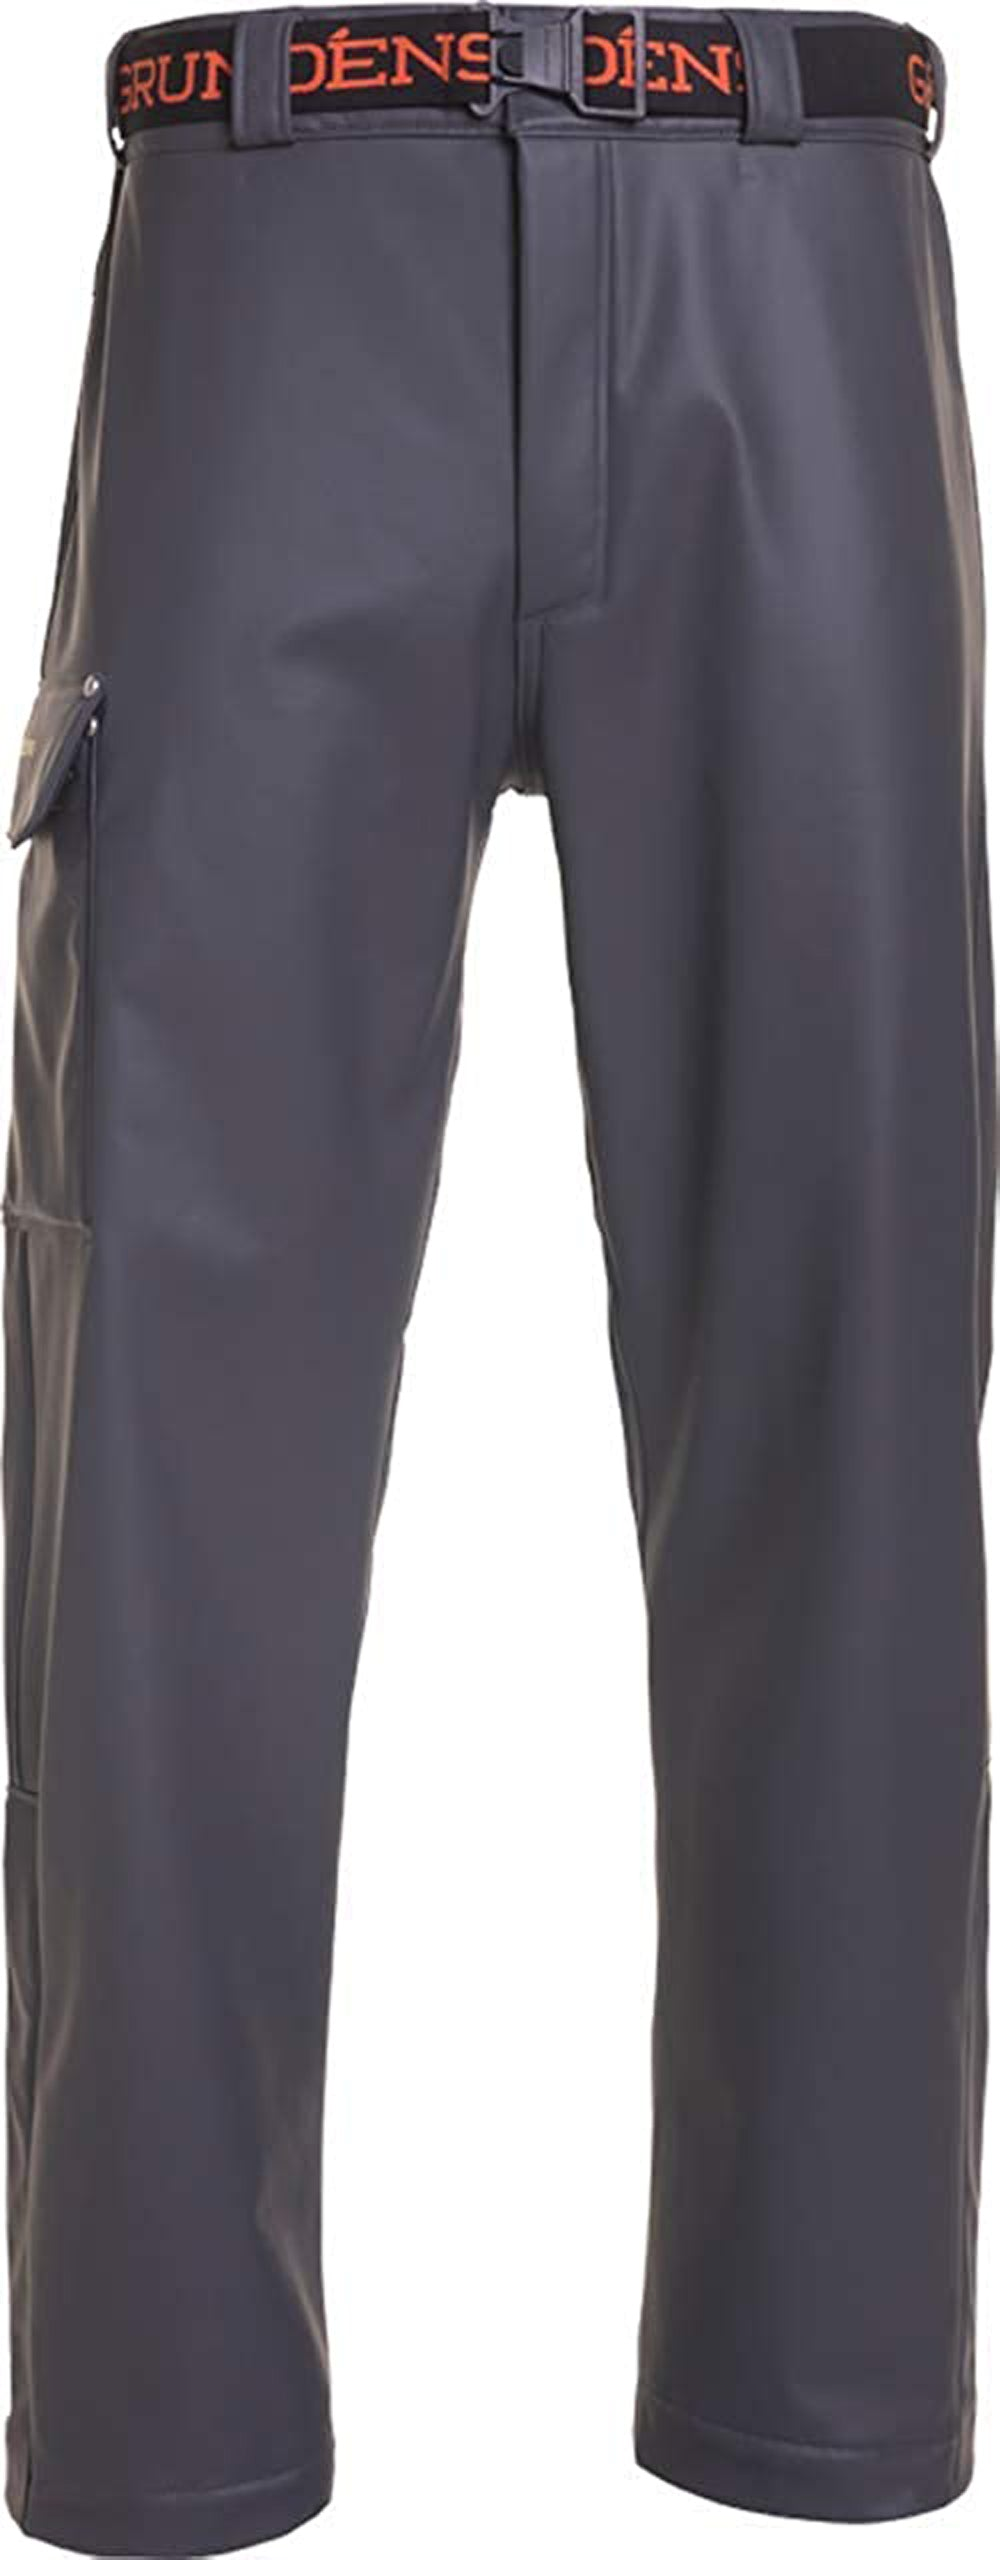 Neptune Thermo Pant in Iron Grey color from the front view